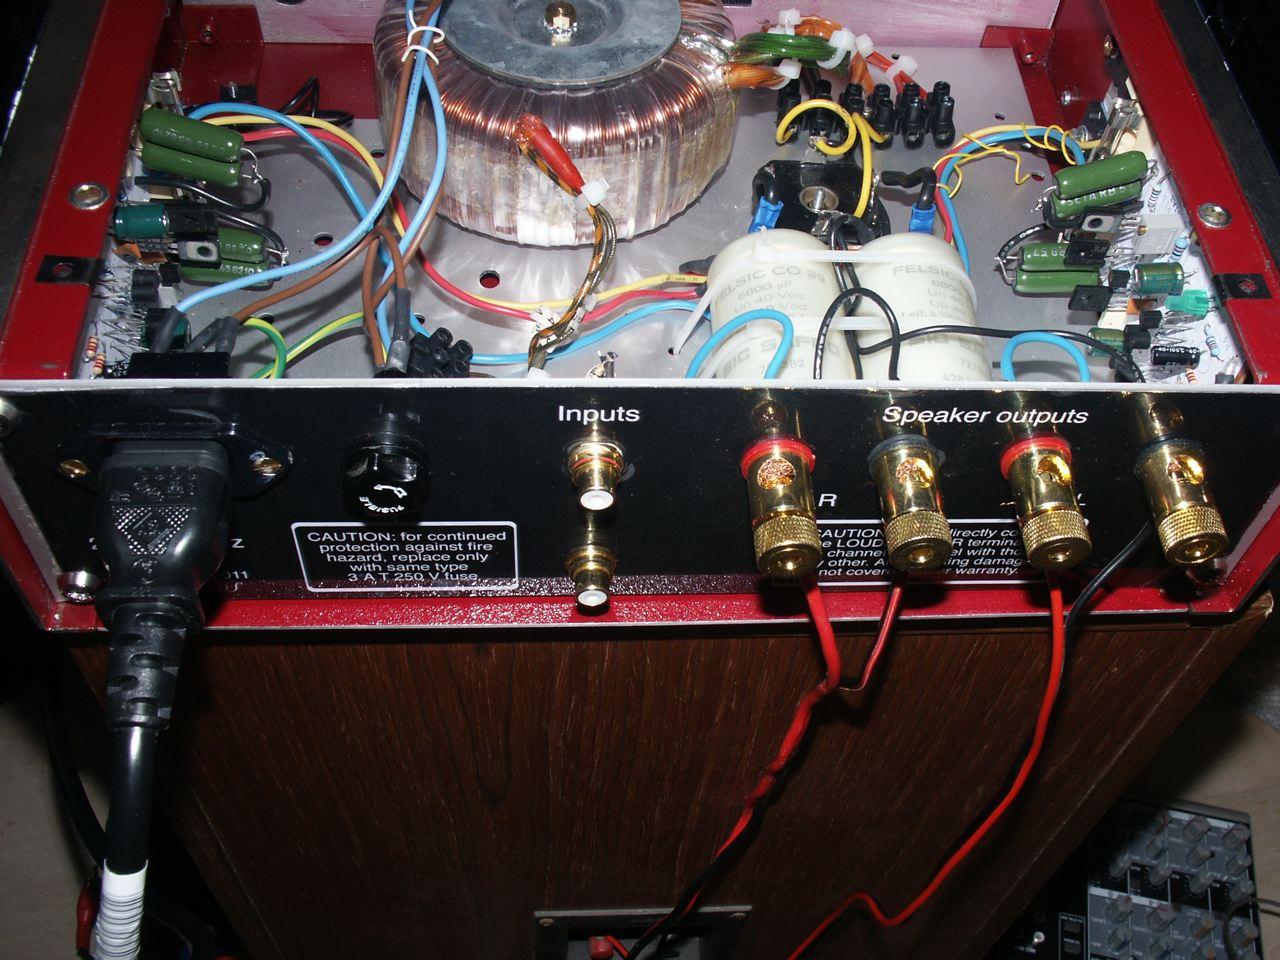 A 55 W Power Stereo Amplifier Based On Esp P3a Davide Bucci 50 Watt Transistor Circuit View Of The Filter Capacitors With Transistors Mounted Heatsinks At Full Edge Clipping Sine Wave